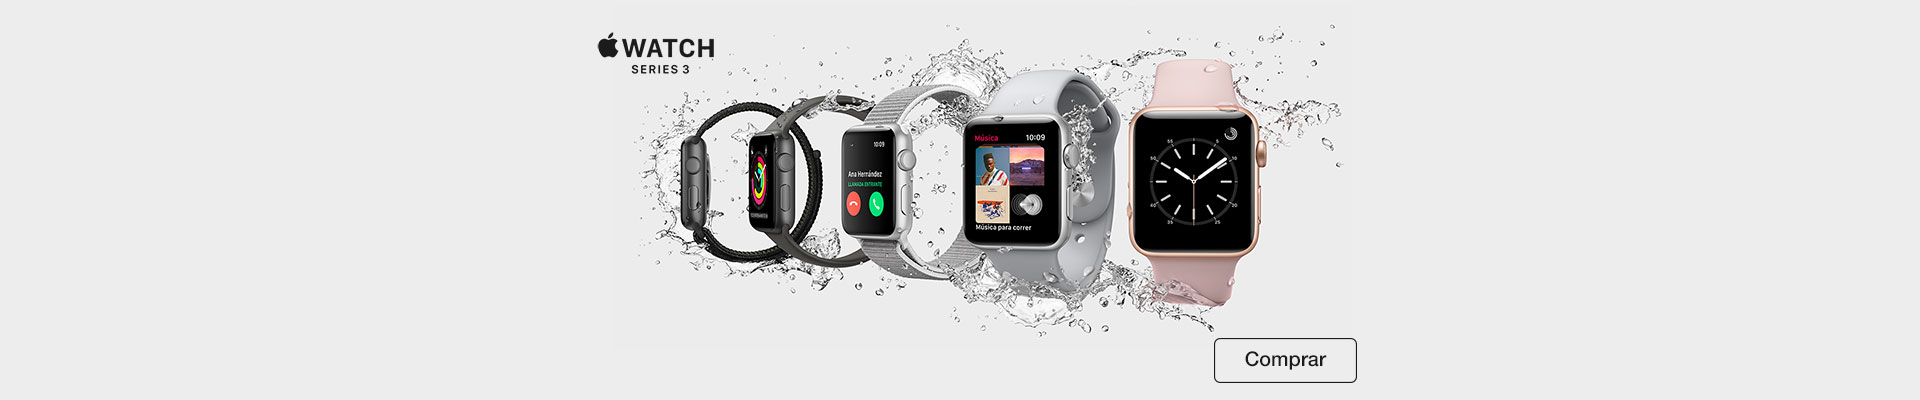 PPAL KT apple watch s3 - 3 Sept